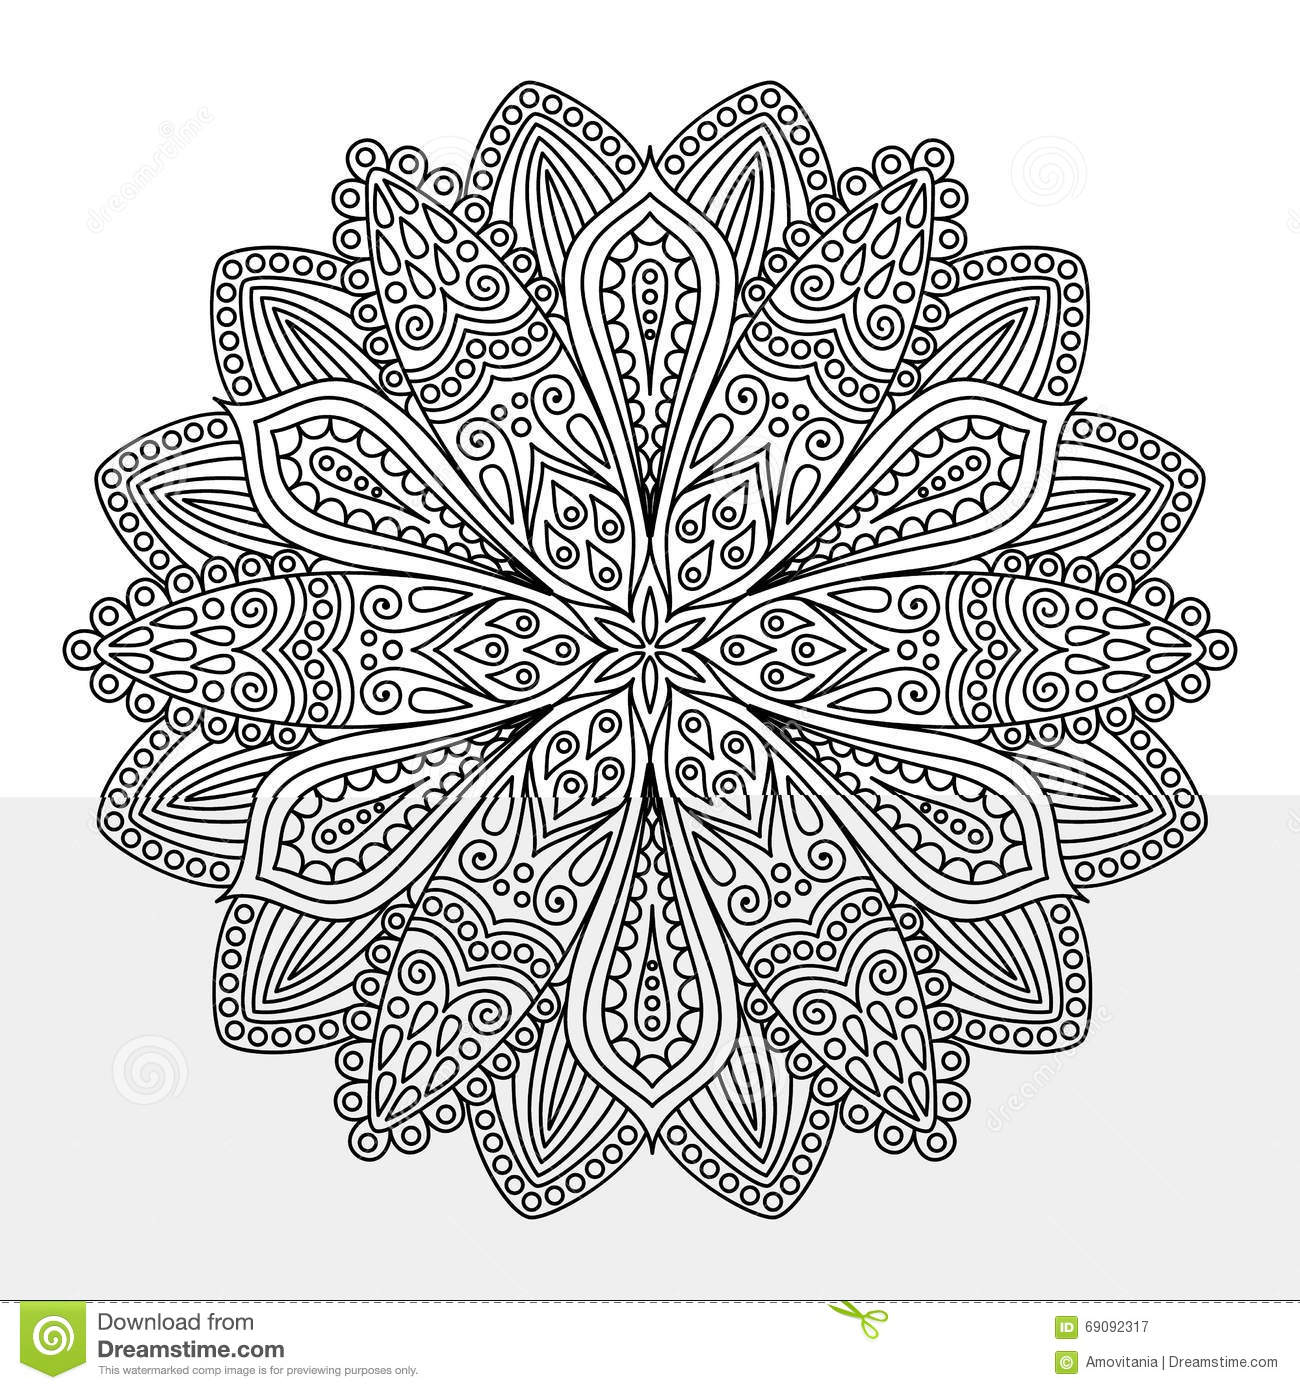 Intricate Flower Coloring Page Stock Vector